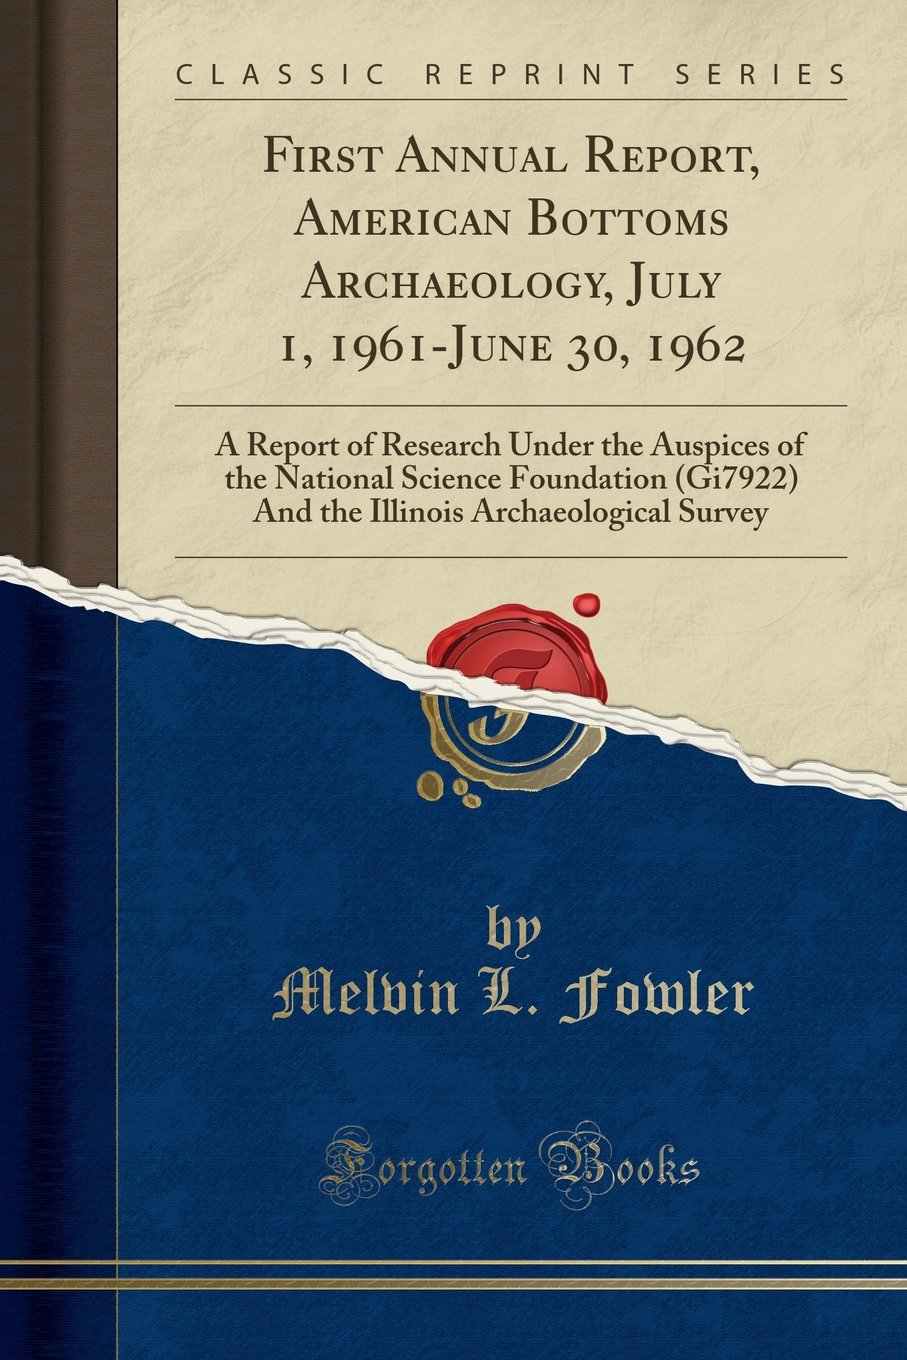 Download First Annual Report, American Bottoms Archaeology, July 1, 1961-June 30, 1962: A Report of Research Under the Auspices of the National Science Archaeological Survey (Classic Reprint) pdf